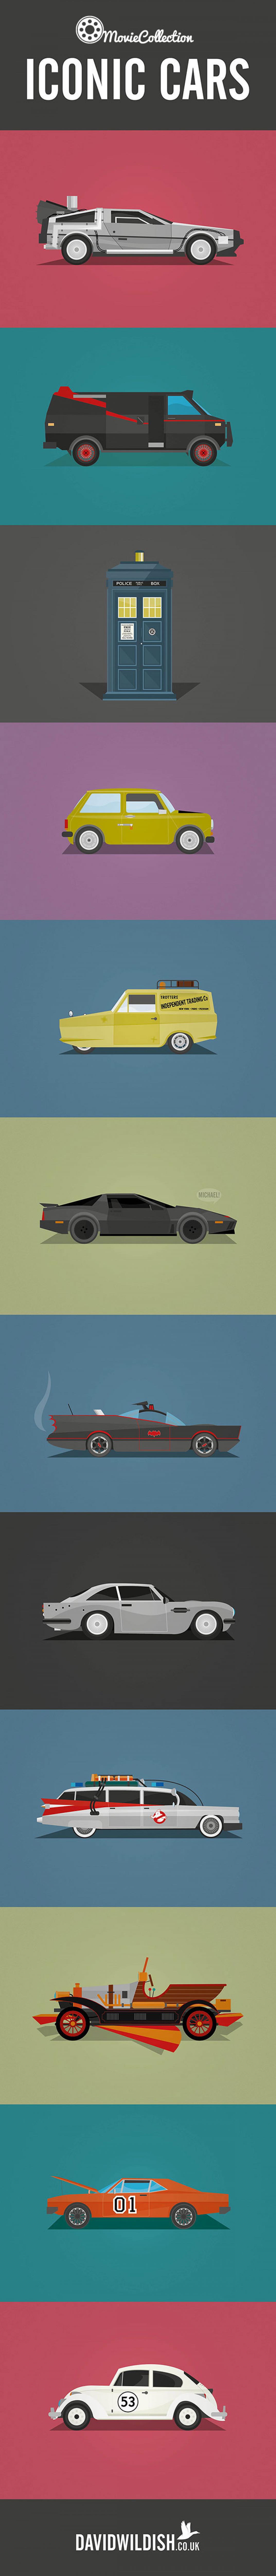 Movie & Television - Iconic Cars Infographic